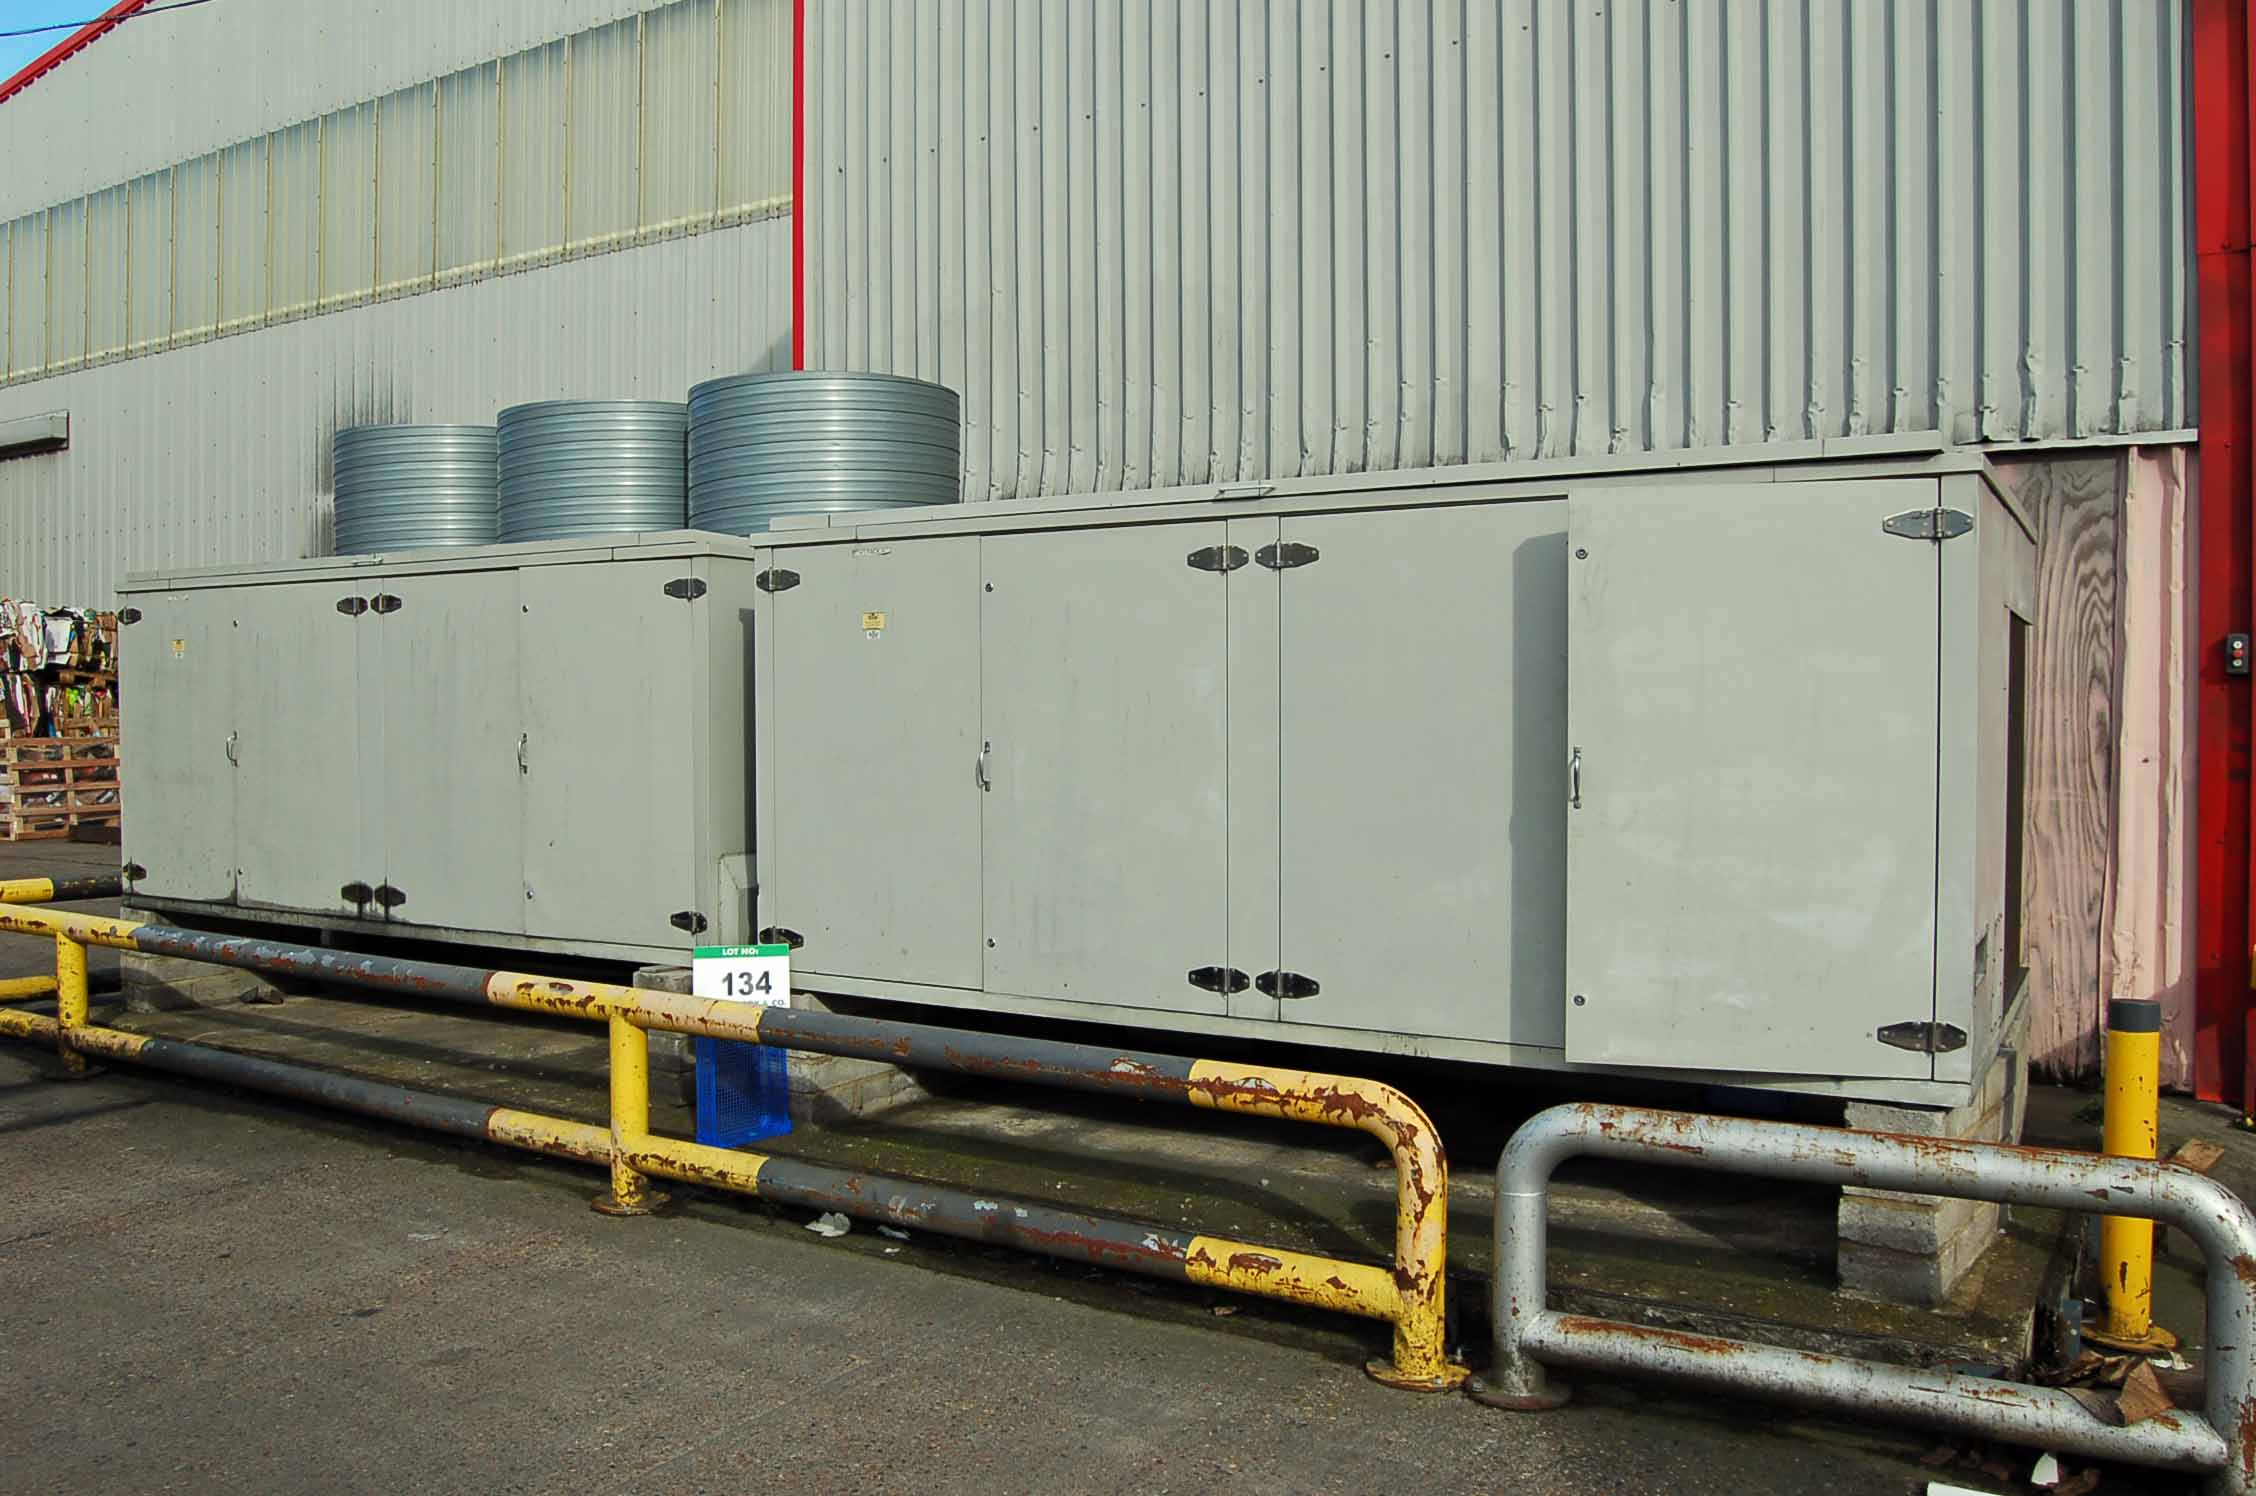 Lot 134 - Two Triple Fan Chiller Condenser Units (THIS LOT IS USE RESERVED UNTIL JULY 2019, LIKELY TO BE MID